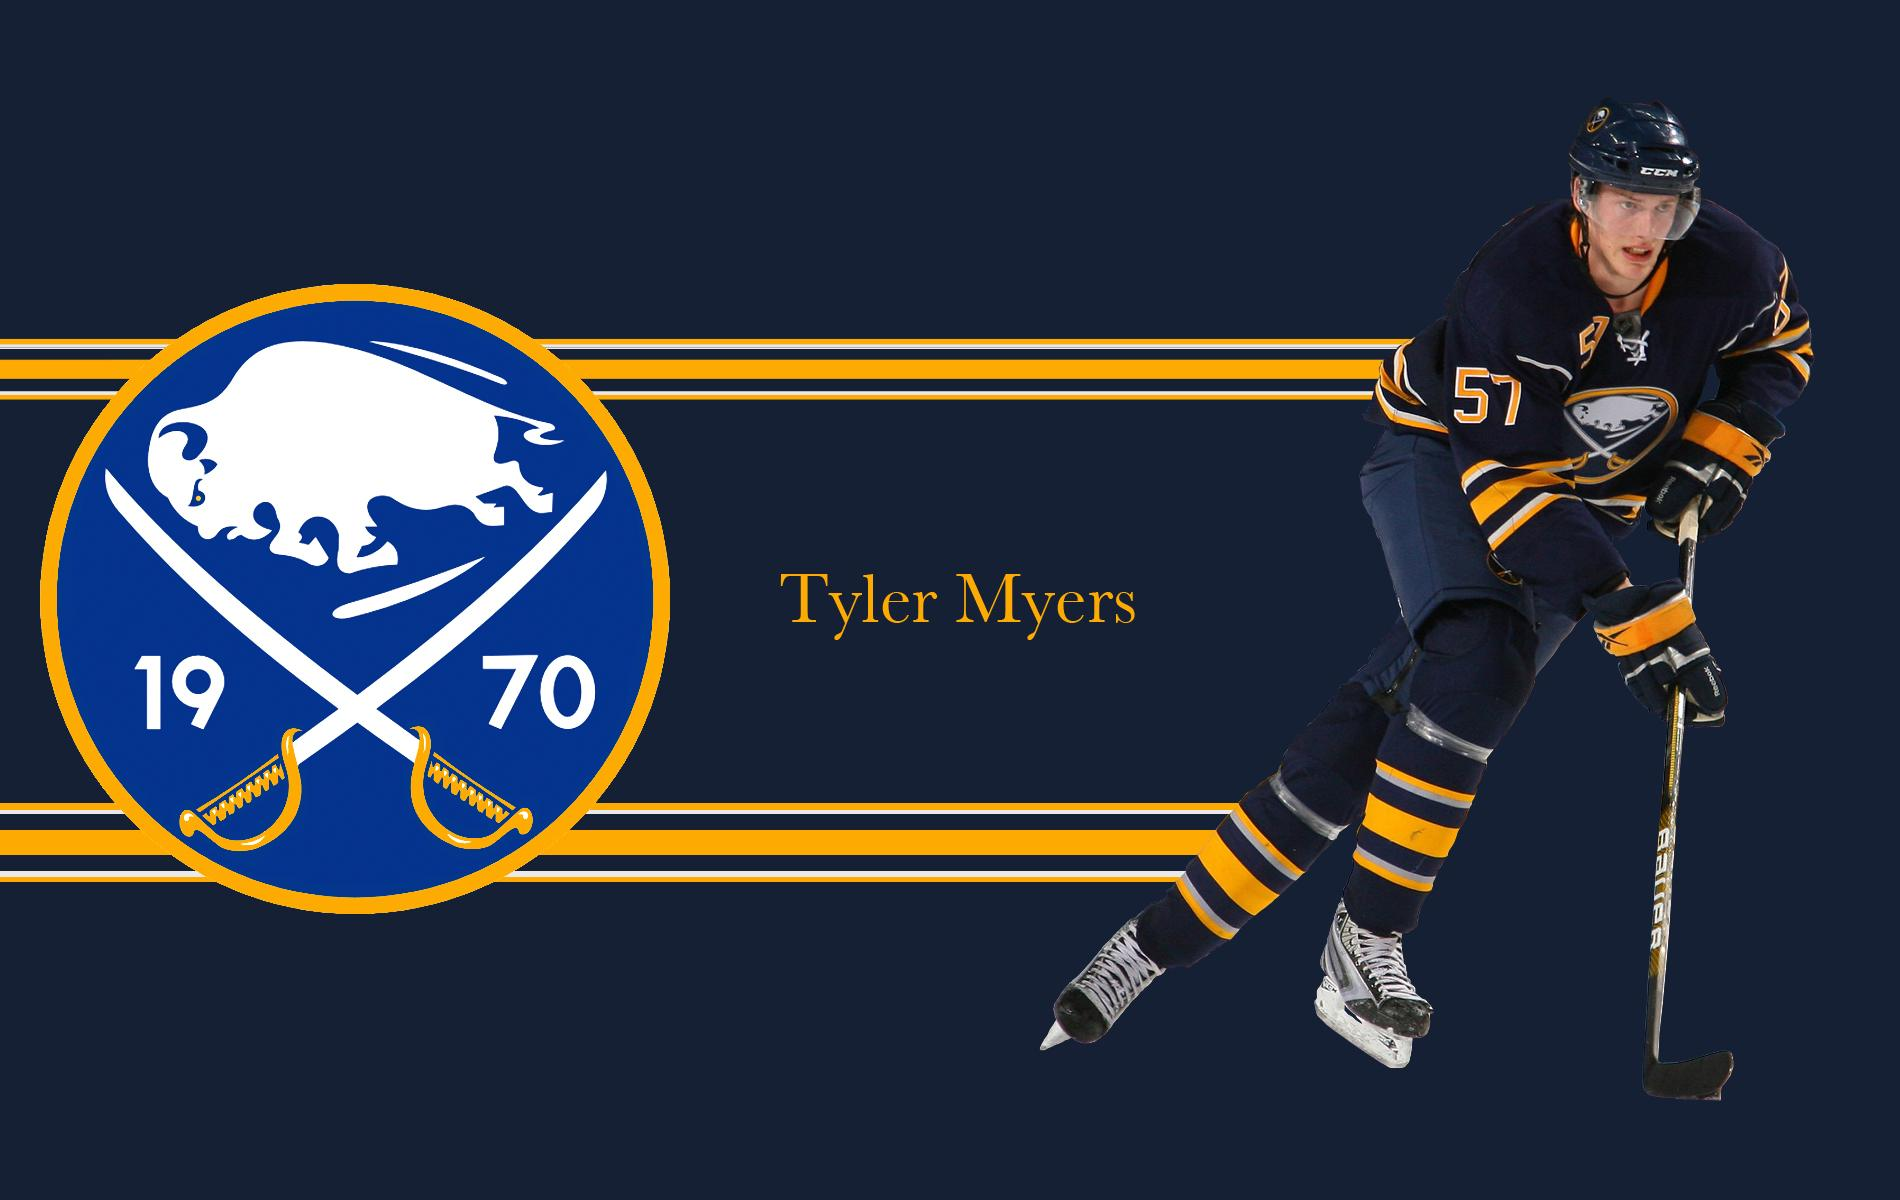 NHL Buffalo Sabres Tyler Myers wallpapers 2018 in Hockey